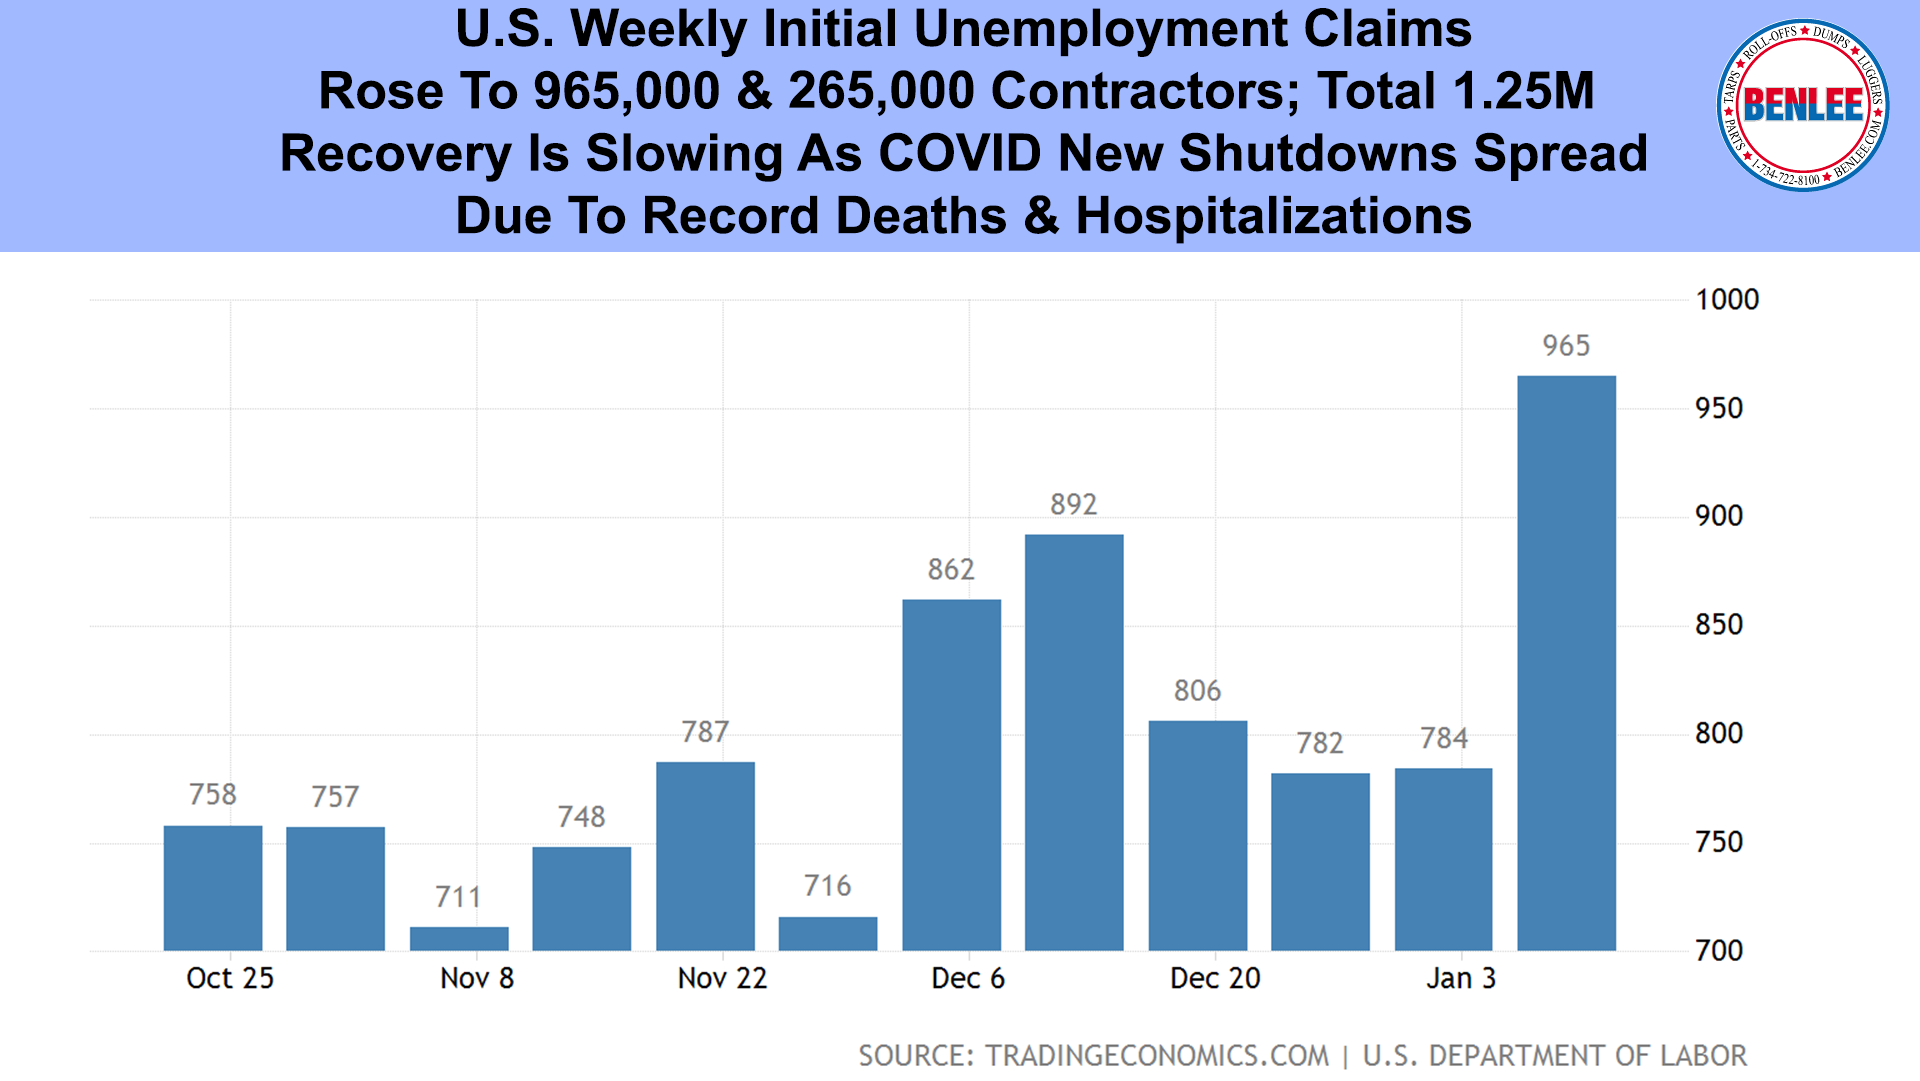 U.S. Weekly Initial Unemployment Claims